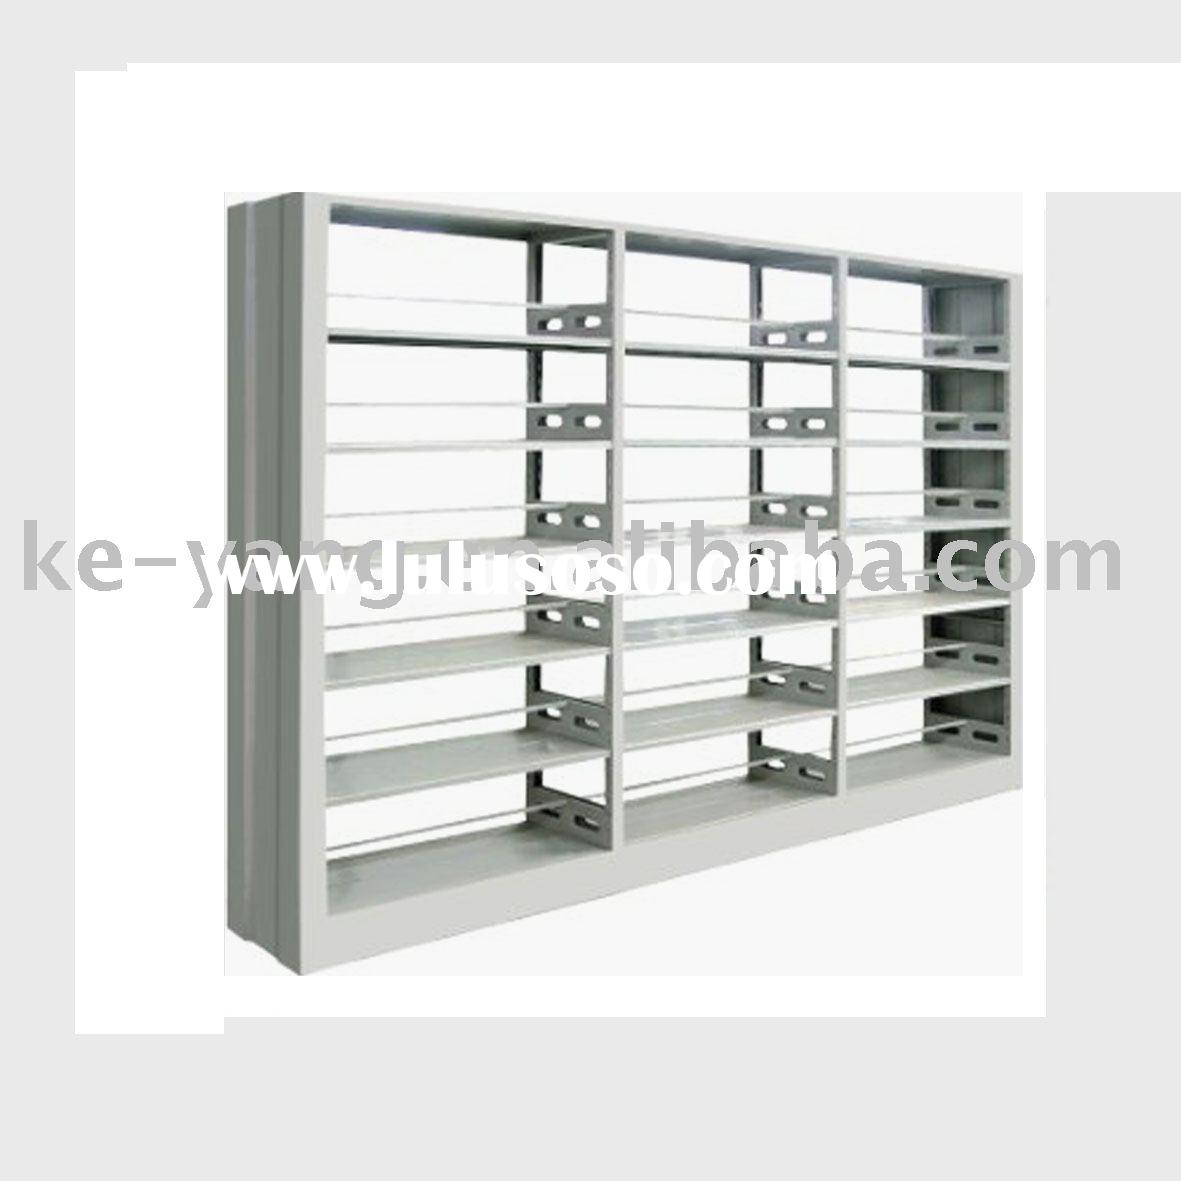 Very Impressive portraiture of steel book shelf steel book shelf Manufacturers in LuLuSoSo.com  with #4A5258 color and 1181x1181 pixels